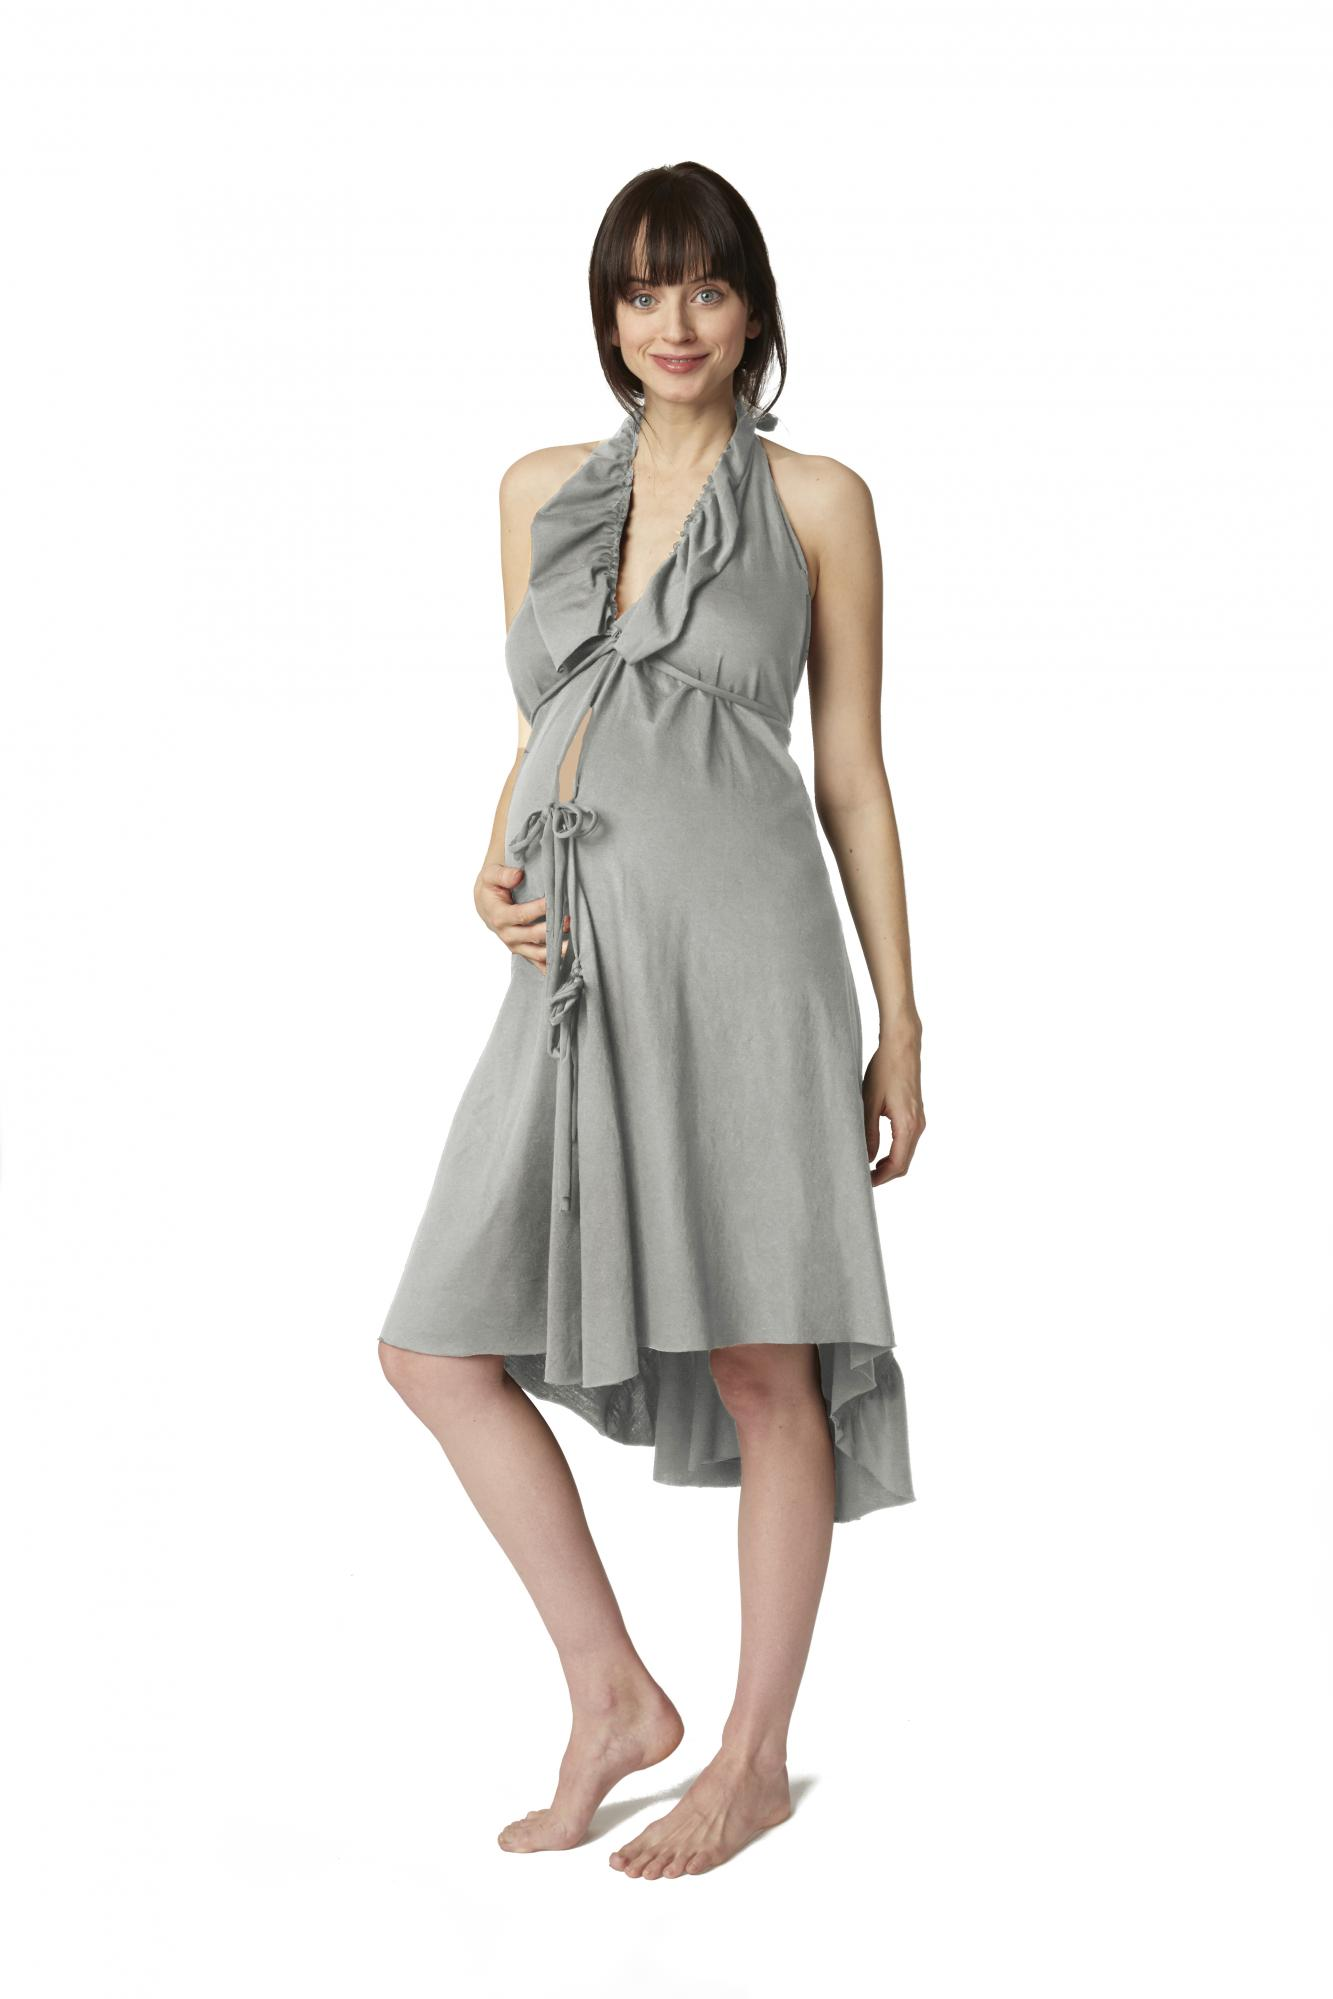 pretty-pushers-ruffle-labor-gown-moonlight-grey.jpg